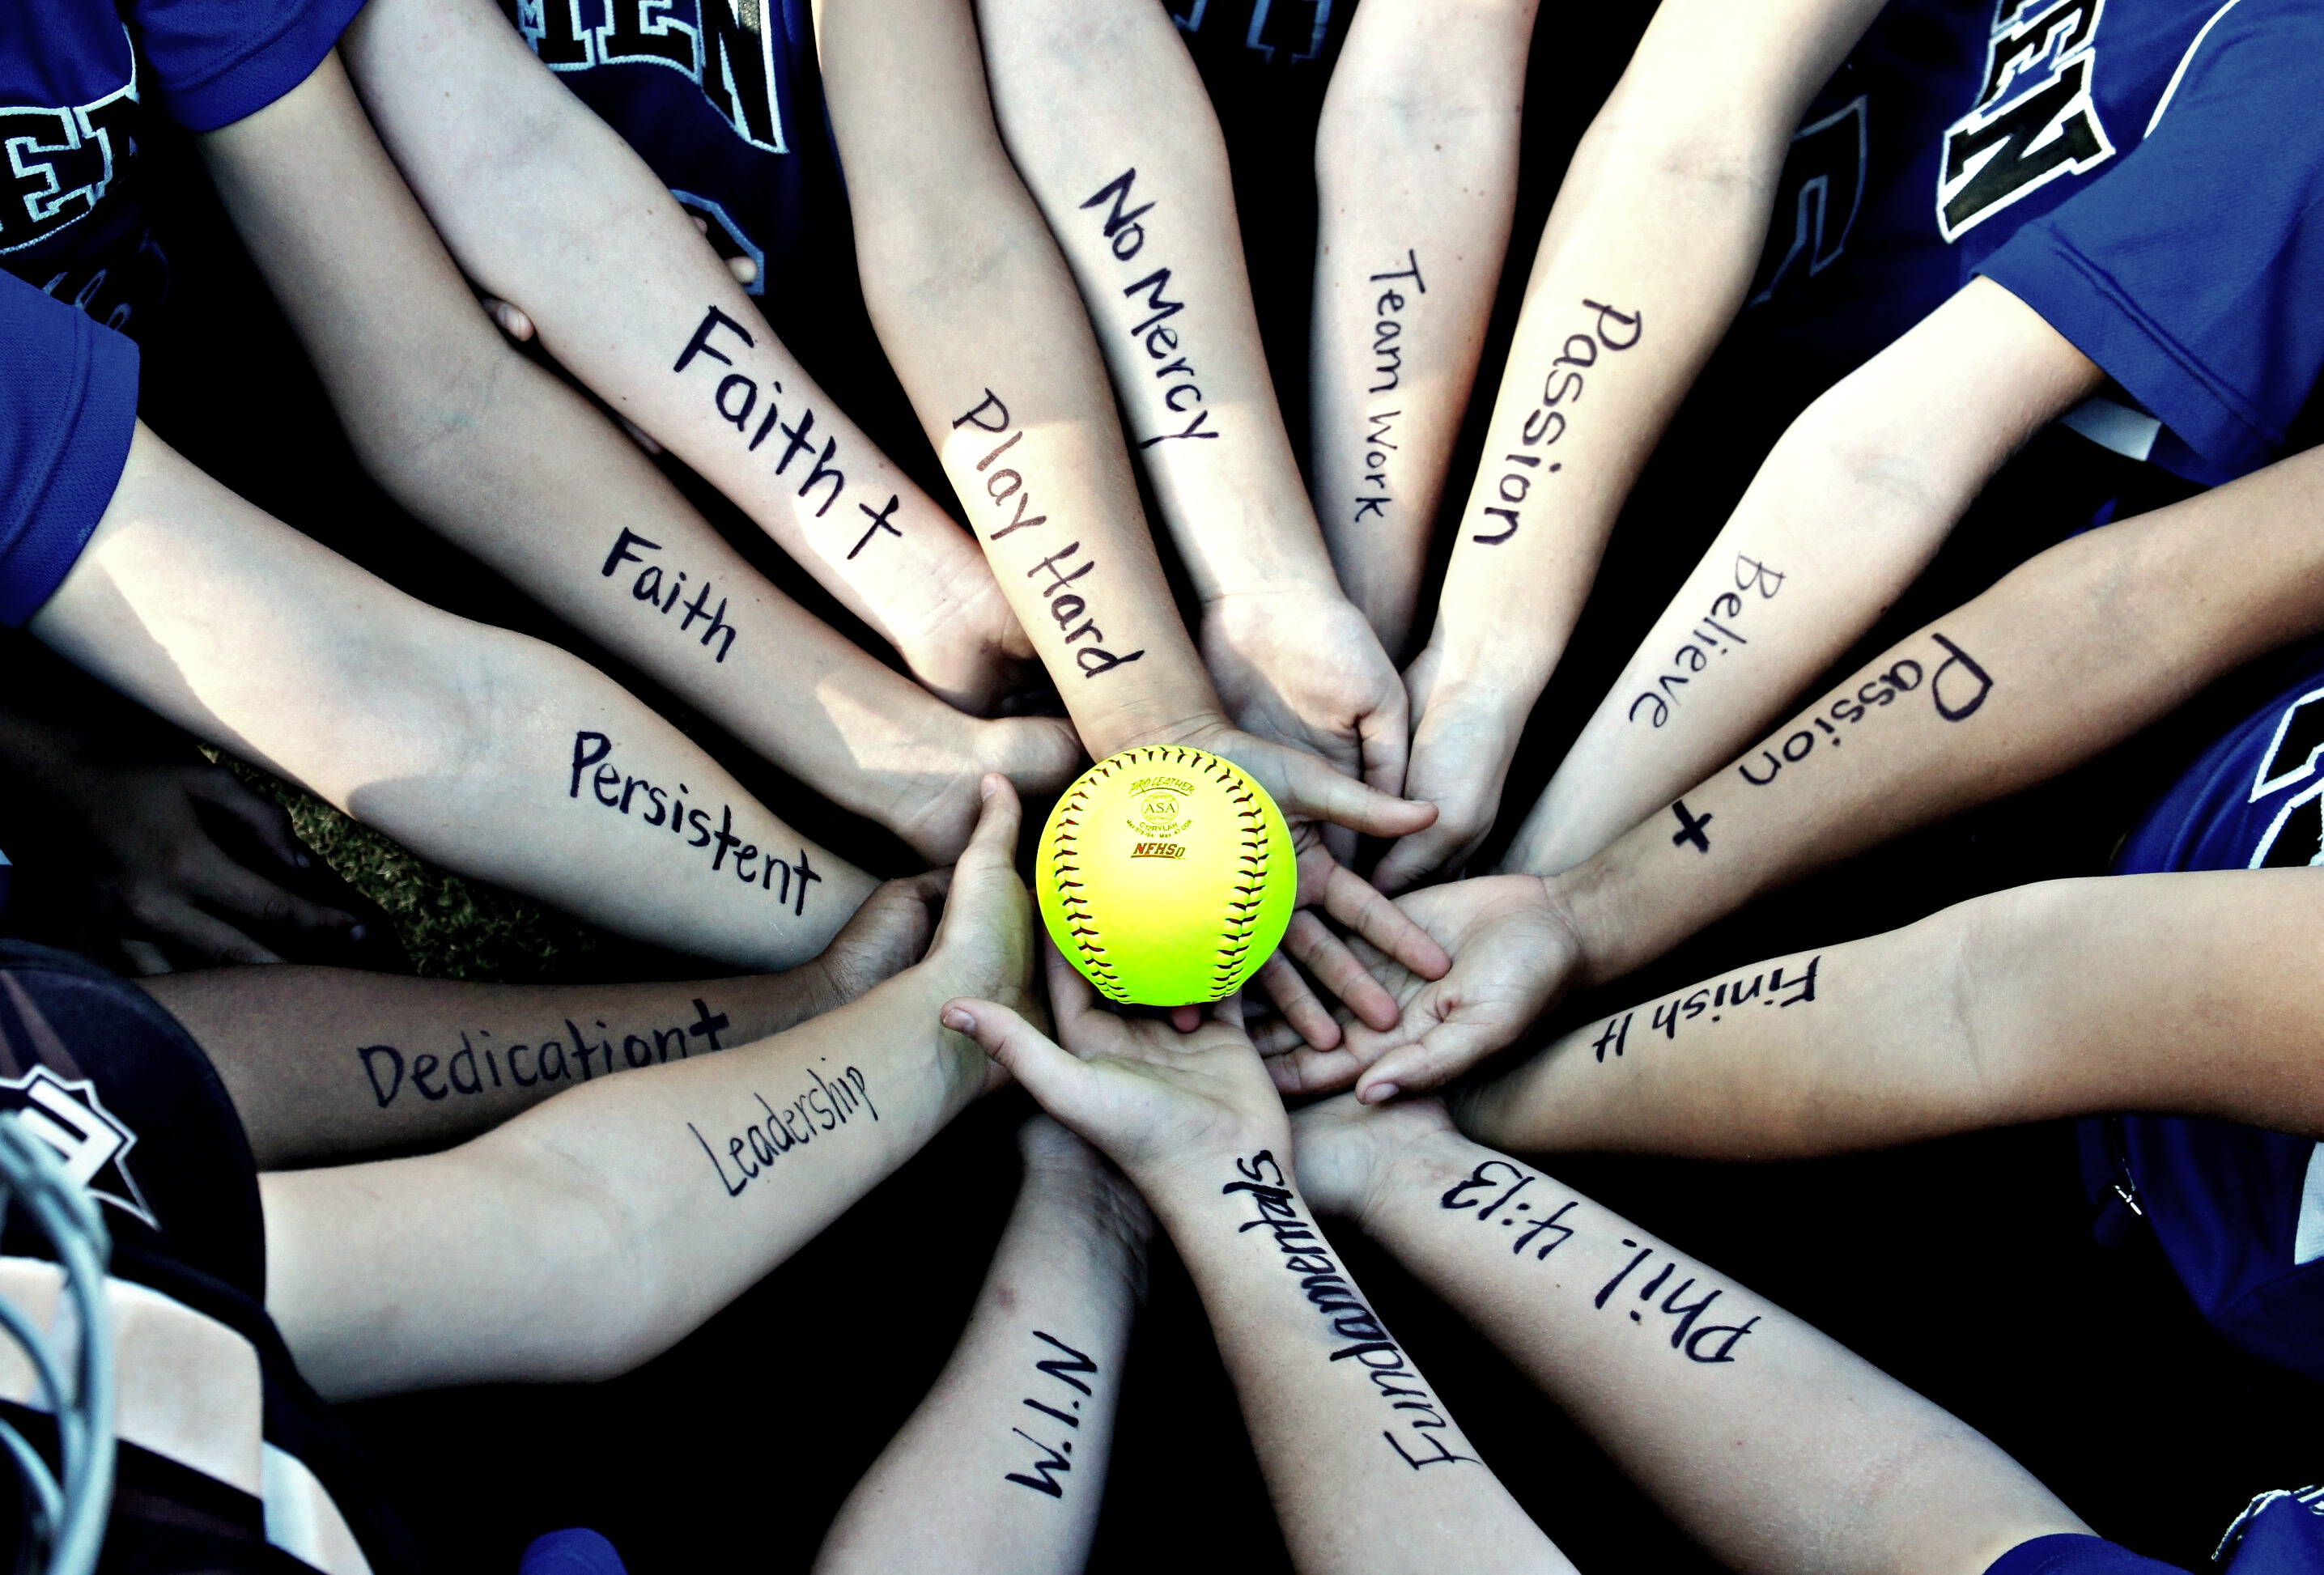 Softball friendship quotes quotesgram - Jpg 2871x1946 Softball Quotes Wallpaper Background